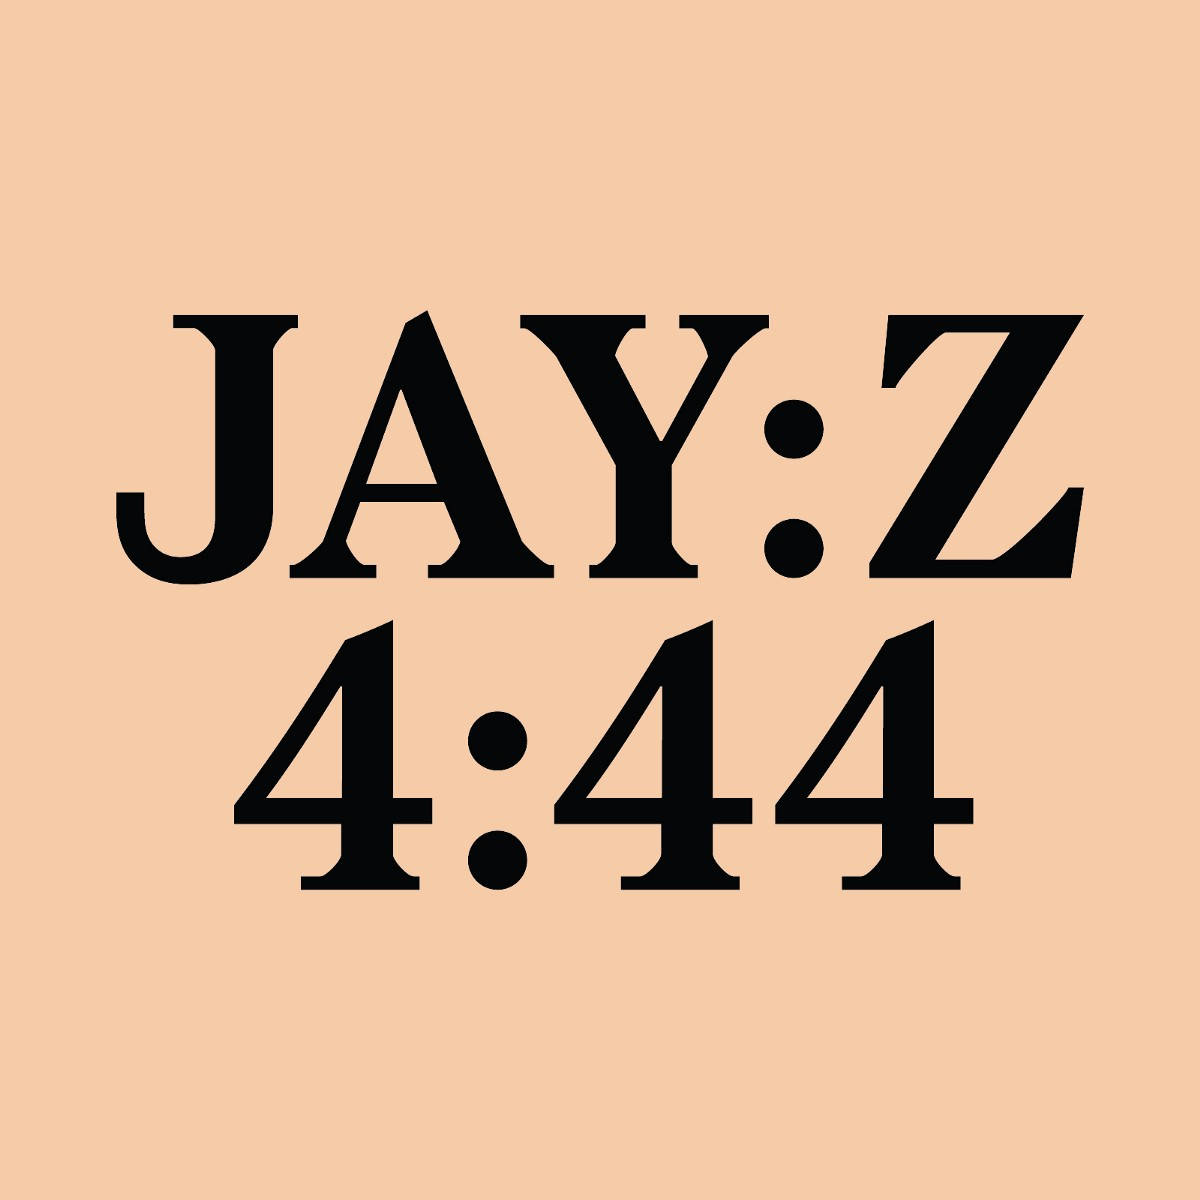 You know what time it is festival peak b its the second consecutive jay z project released from rarefied air leveraging corporate sponsorship and relationships to market a project from the malvernweather